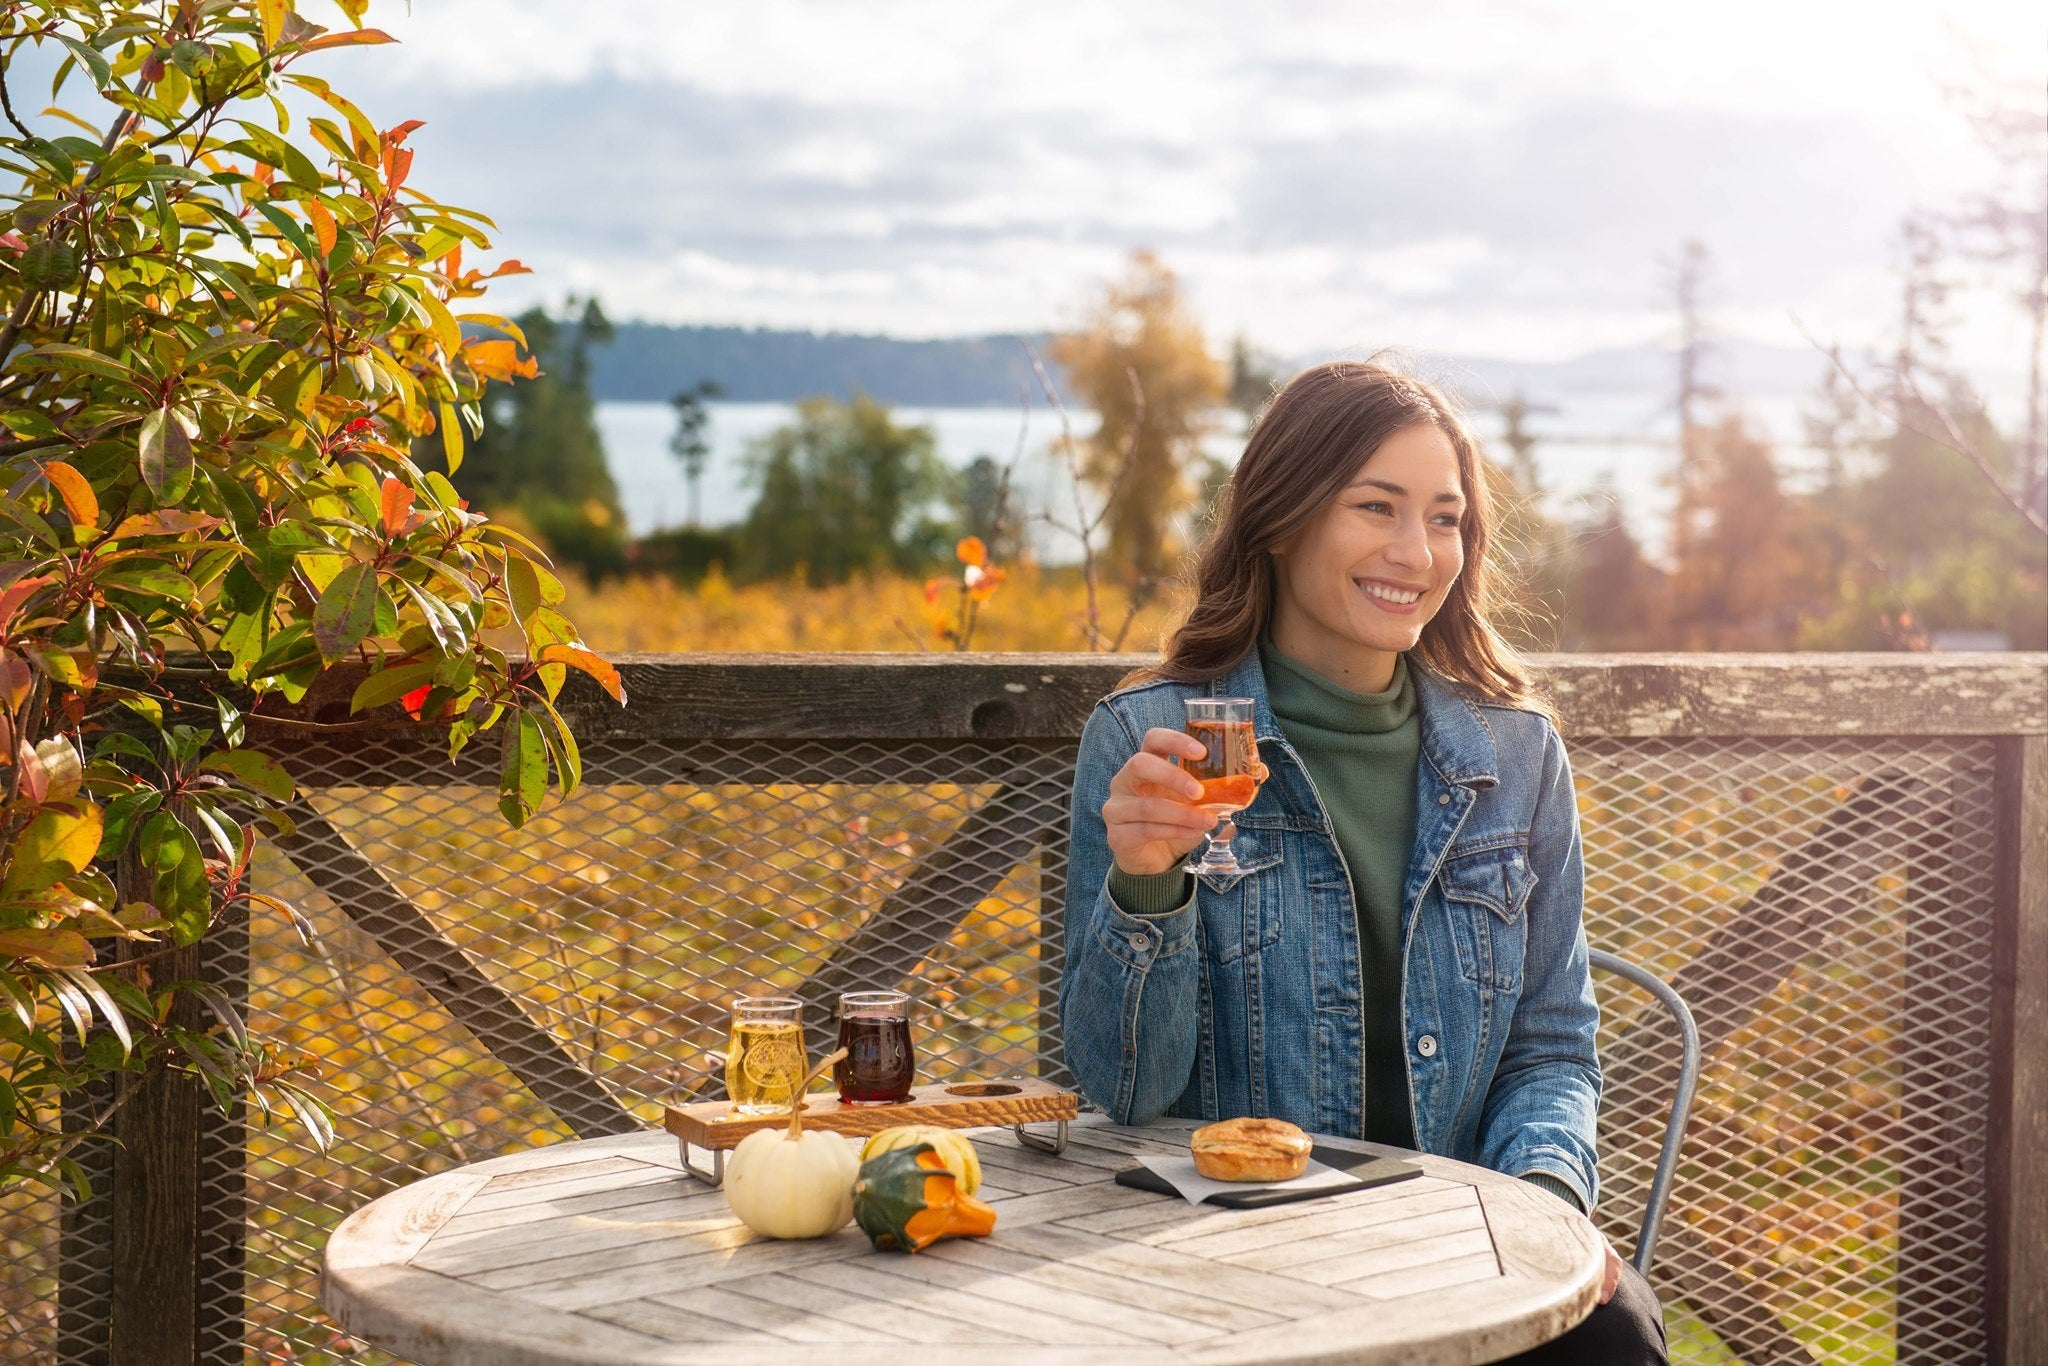 Woman enjoying cider outside on the patio at Sea Cider Farm and Cider House located outside of Victoria, British Coumbia